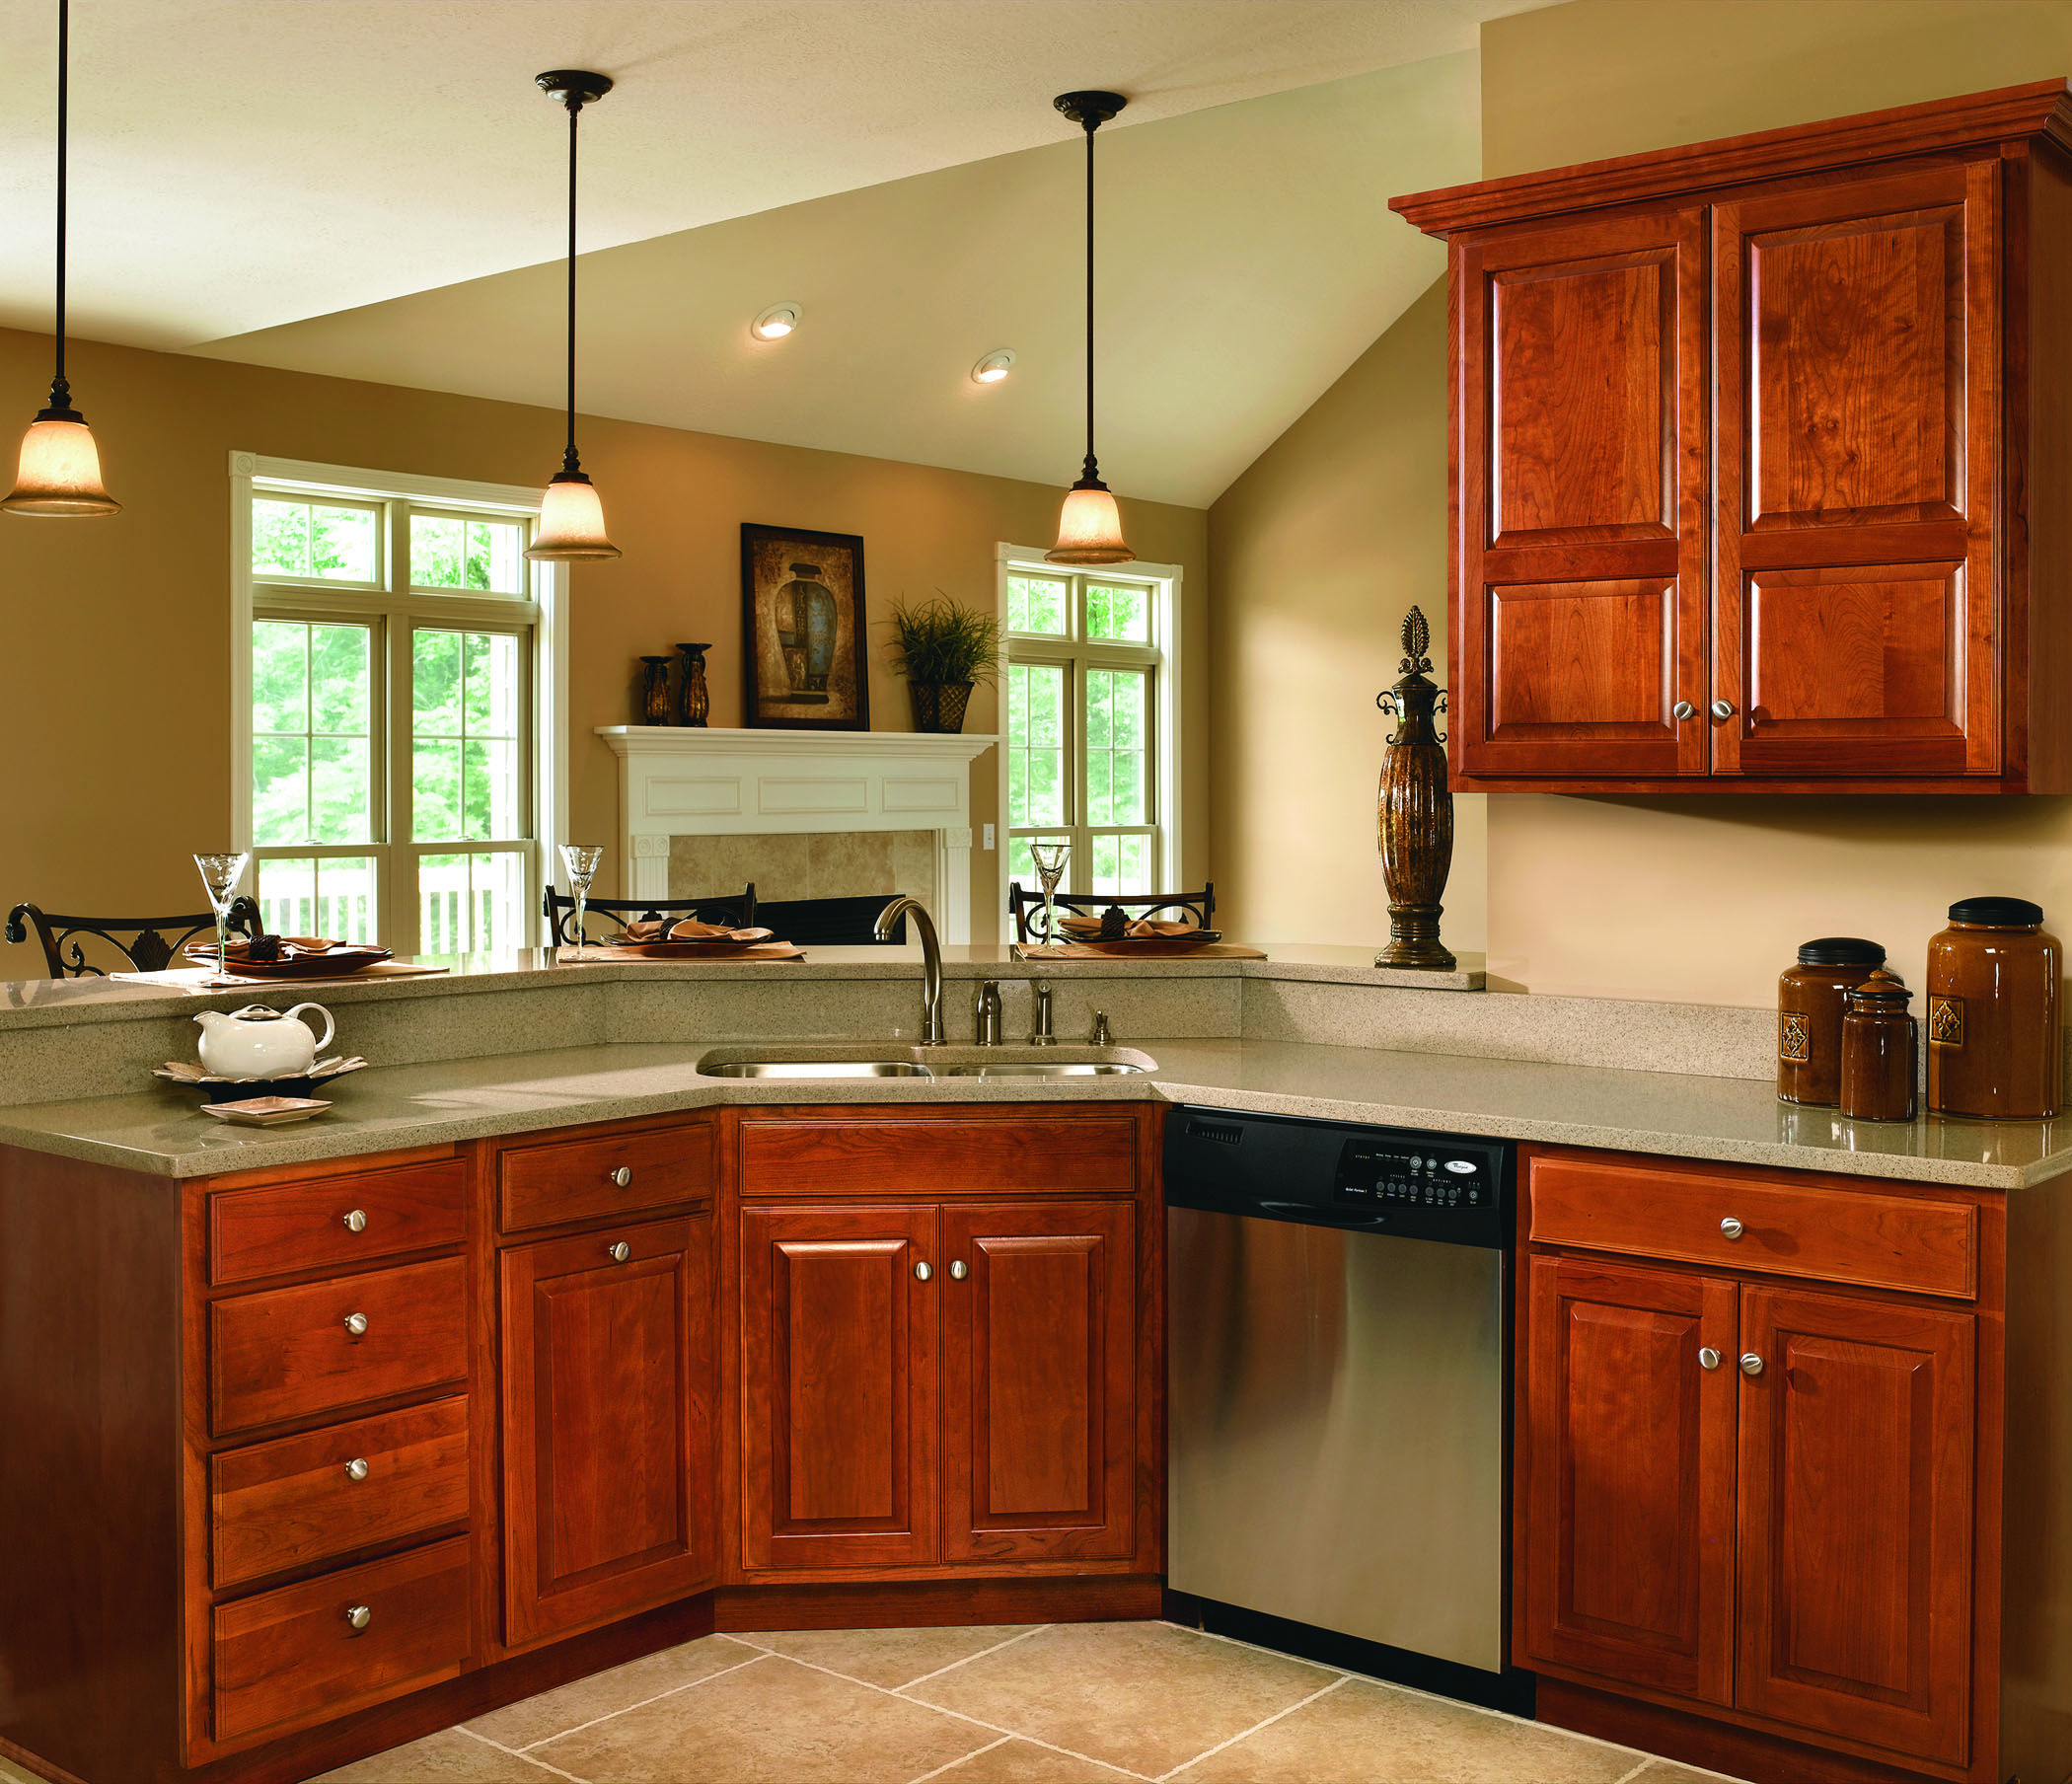 Best Kitchen Gallery: Haas Cabi Co Federal Square Door Style Partial Overlay Wood of Haas Kitchen Cabinets Direct on rachelxblog.com